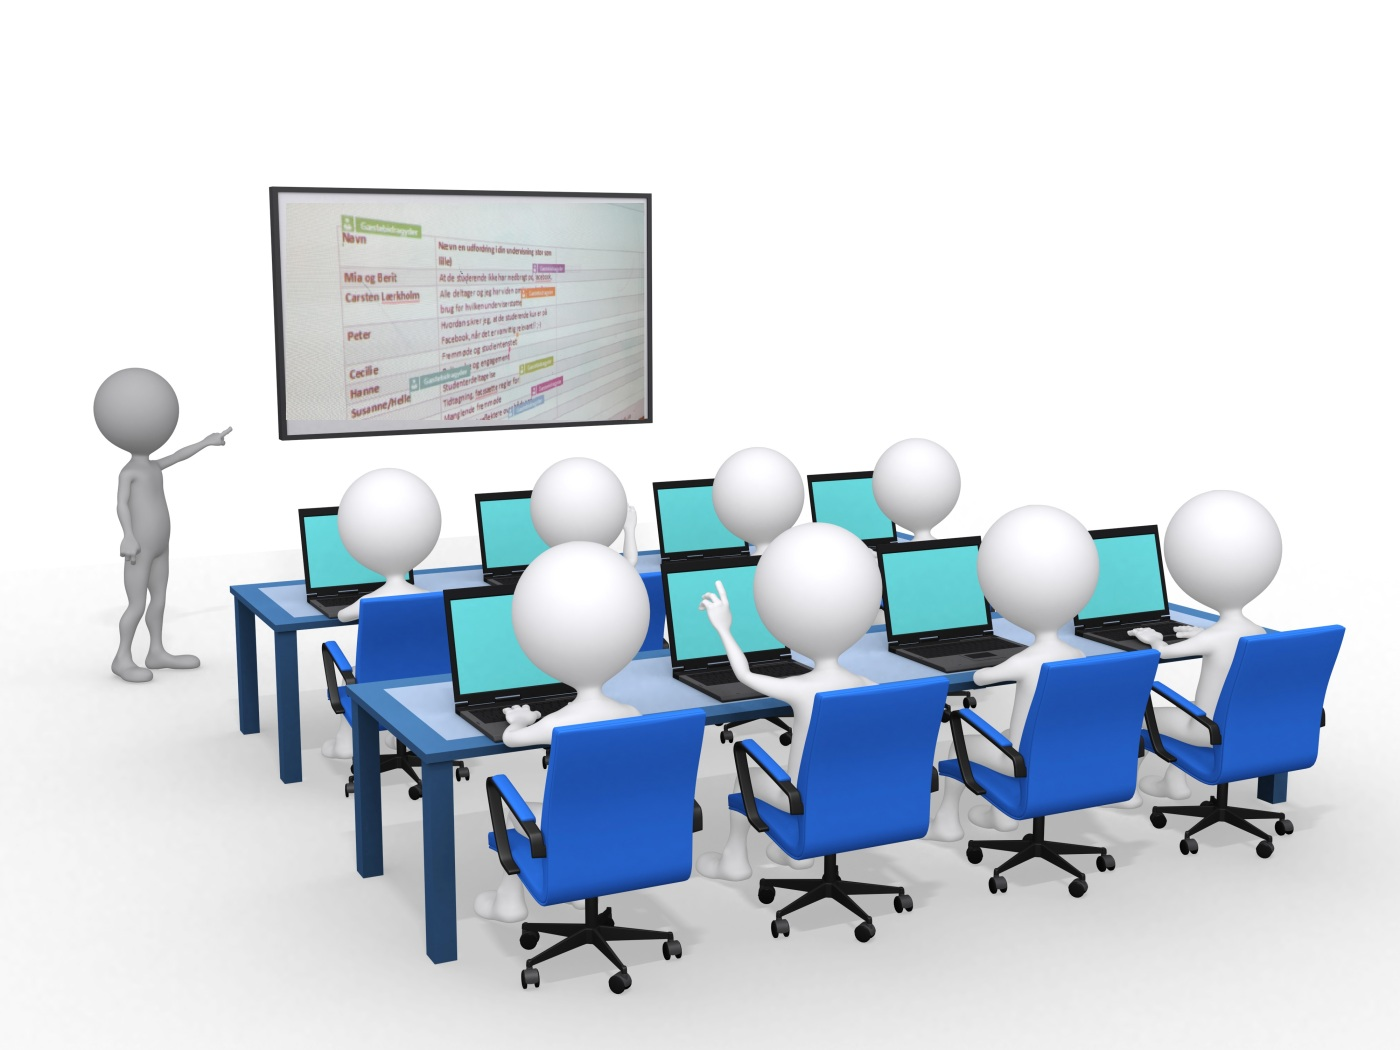 3d person with pointer in hand close to board, concept of education and learning, 3d render illustration